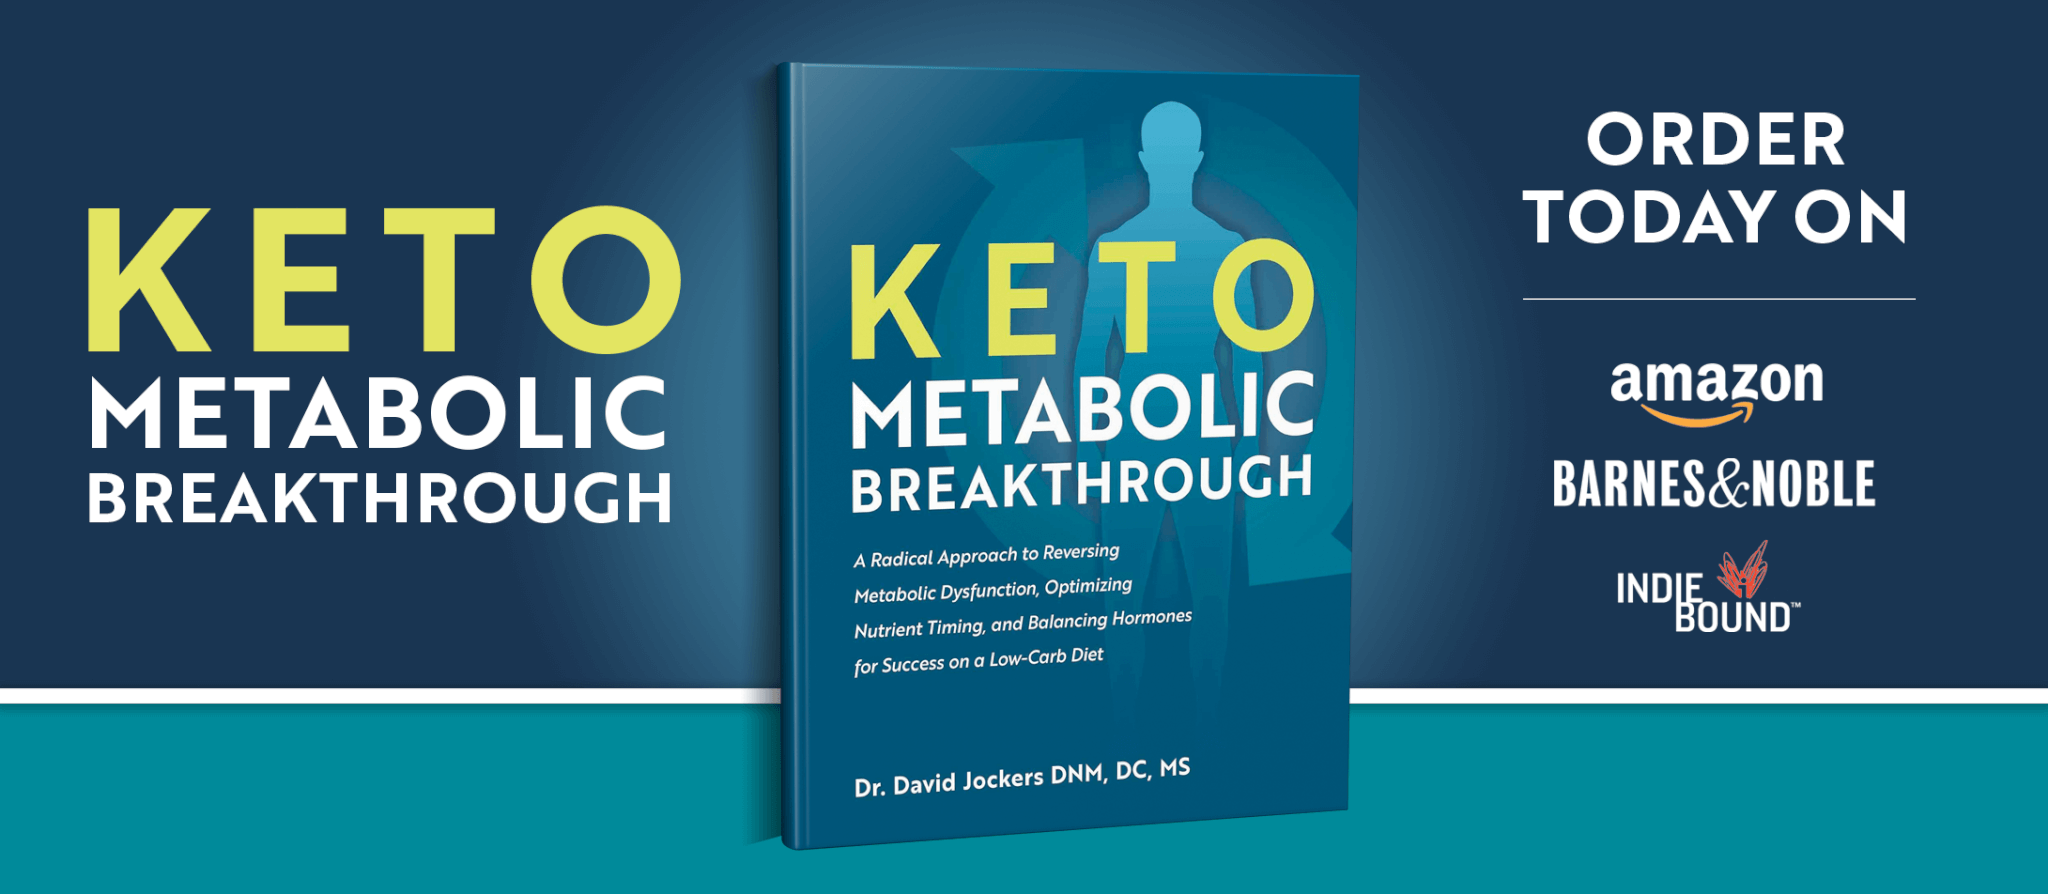 Keto Diet, Is the Keto Diet Bad for the Microbiome?